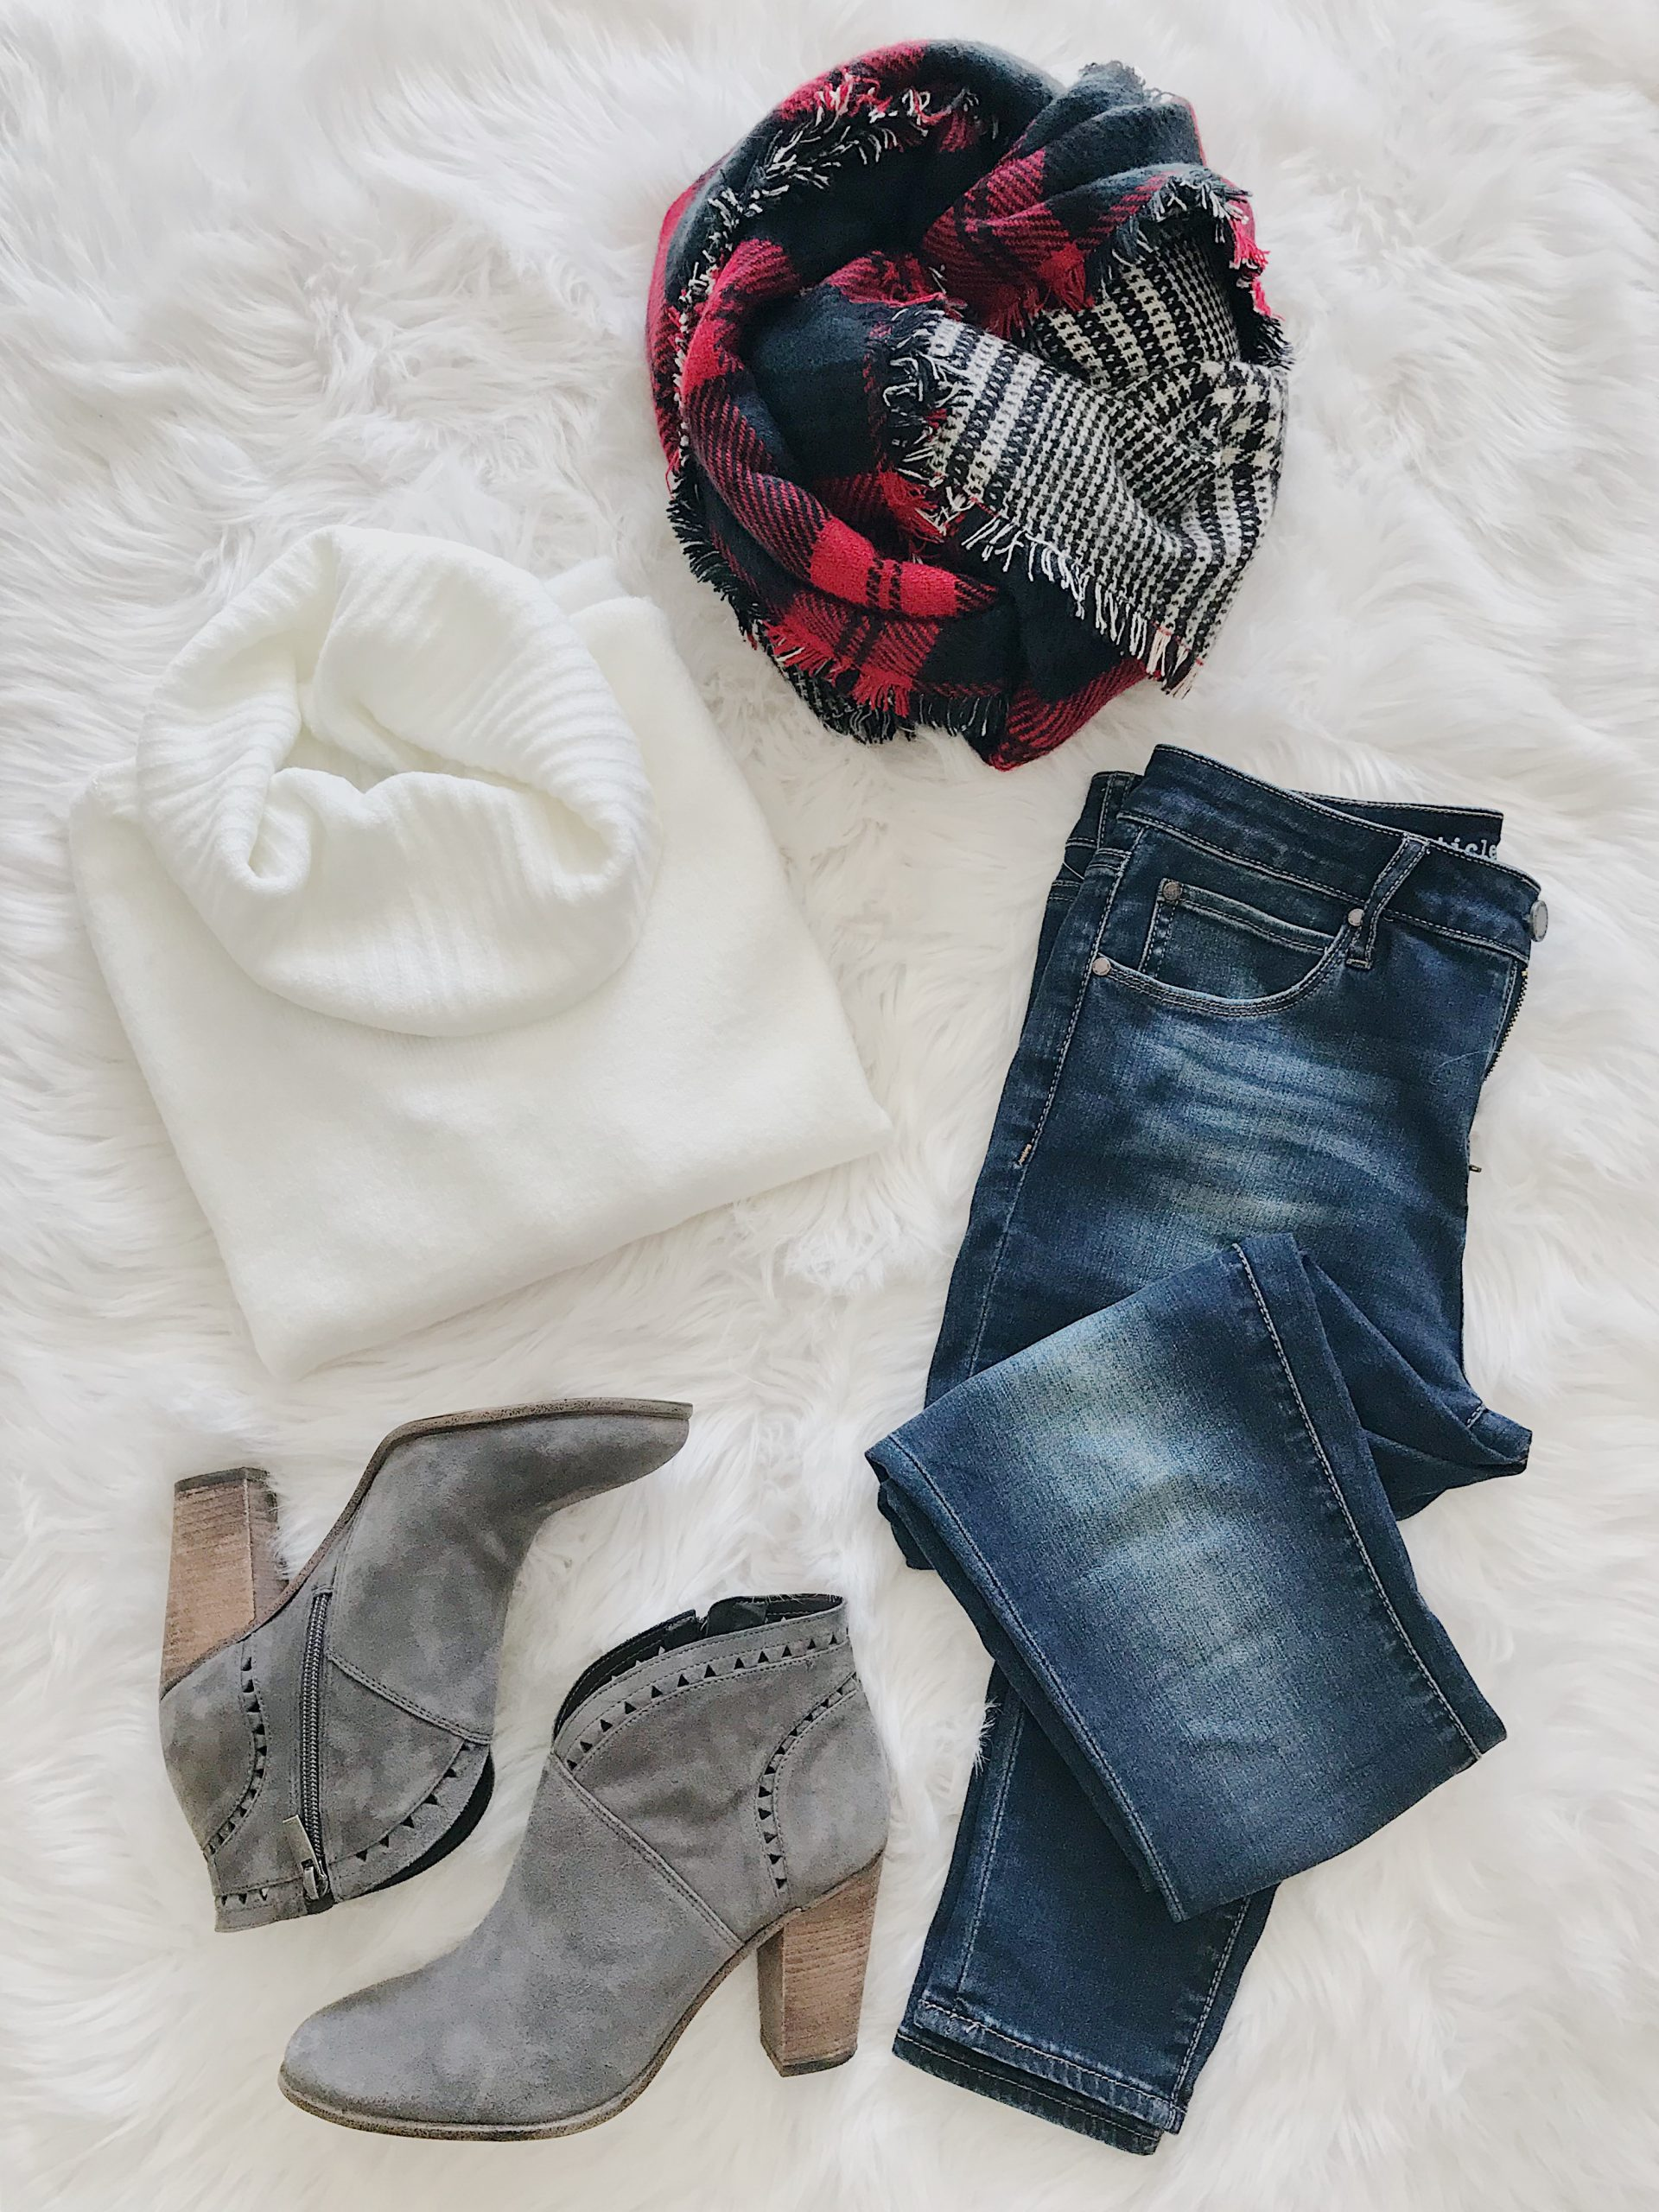 flatlay outfit inspiration for casual holiday outfit